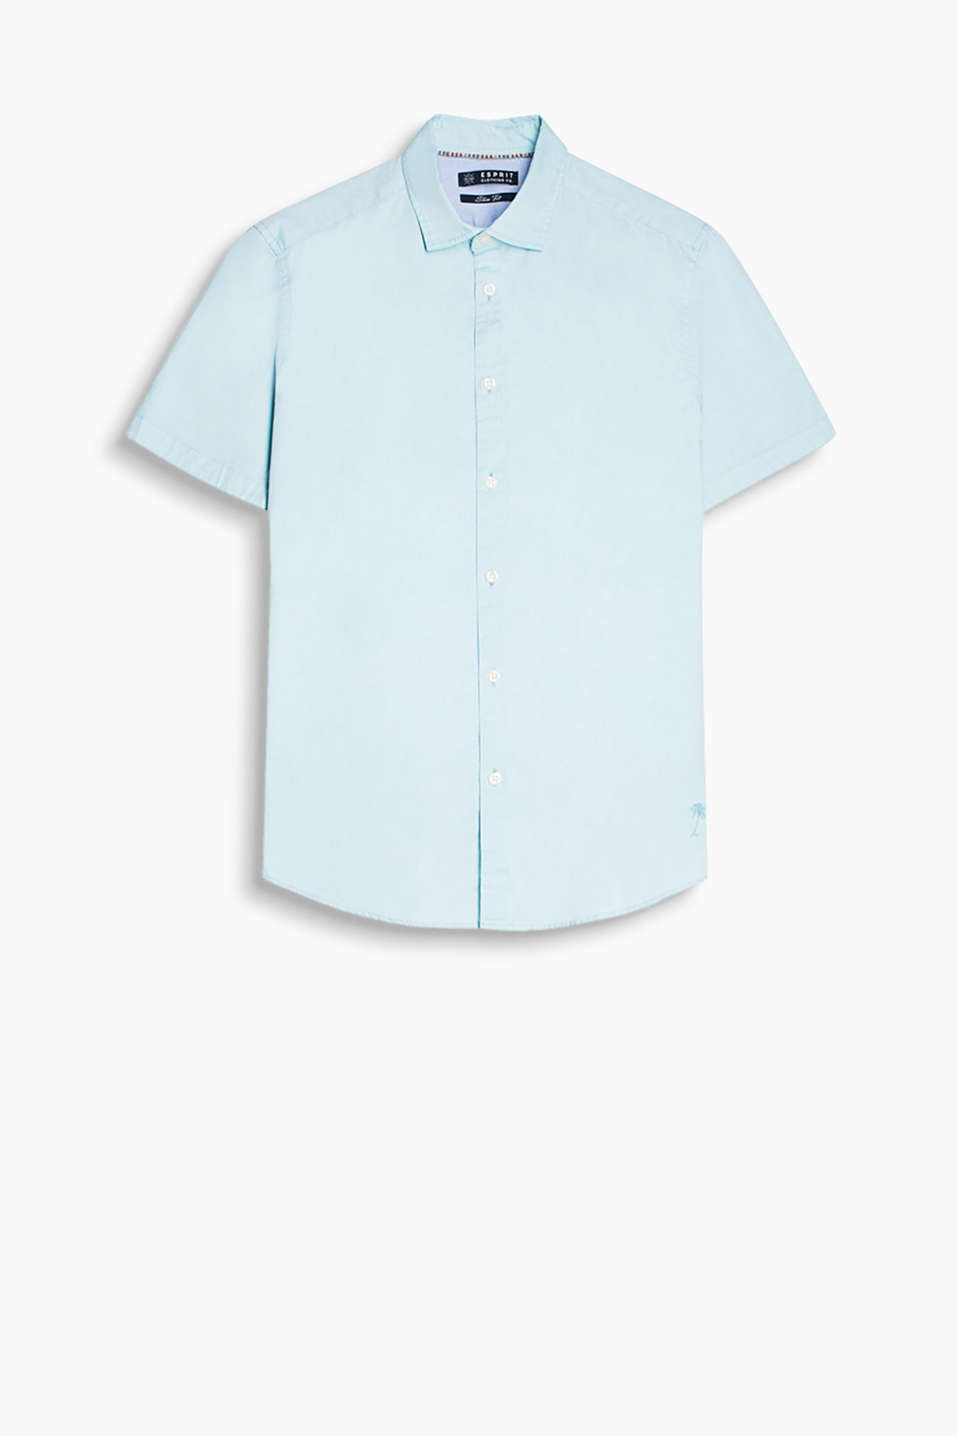 Shirt with a shark collar and short sleeves